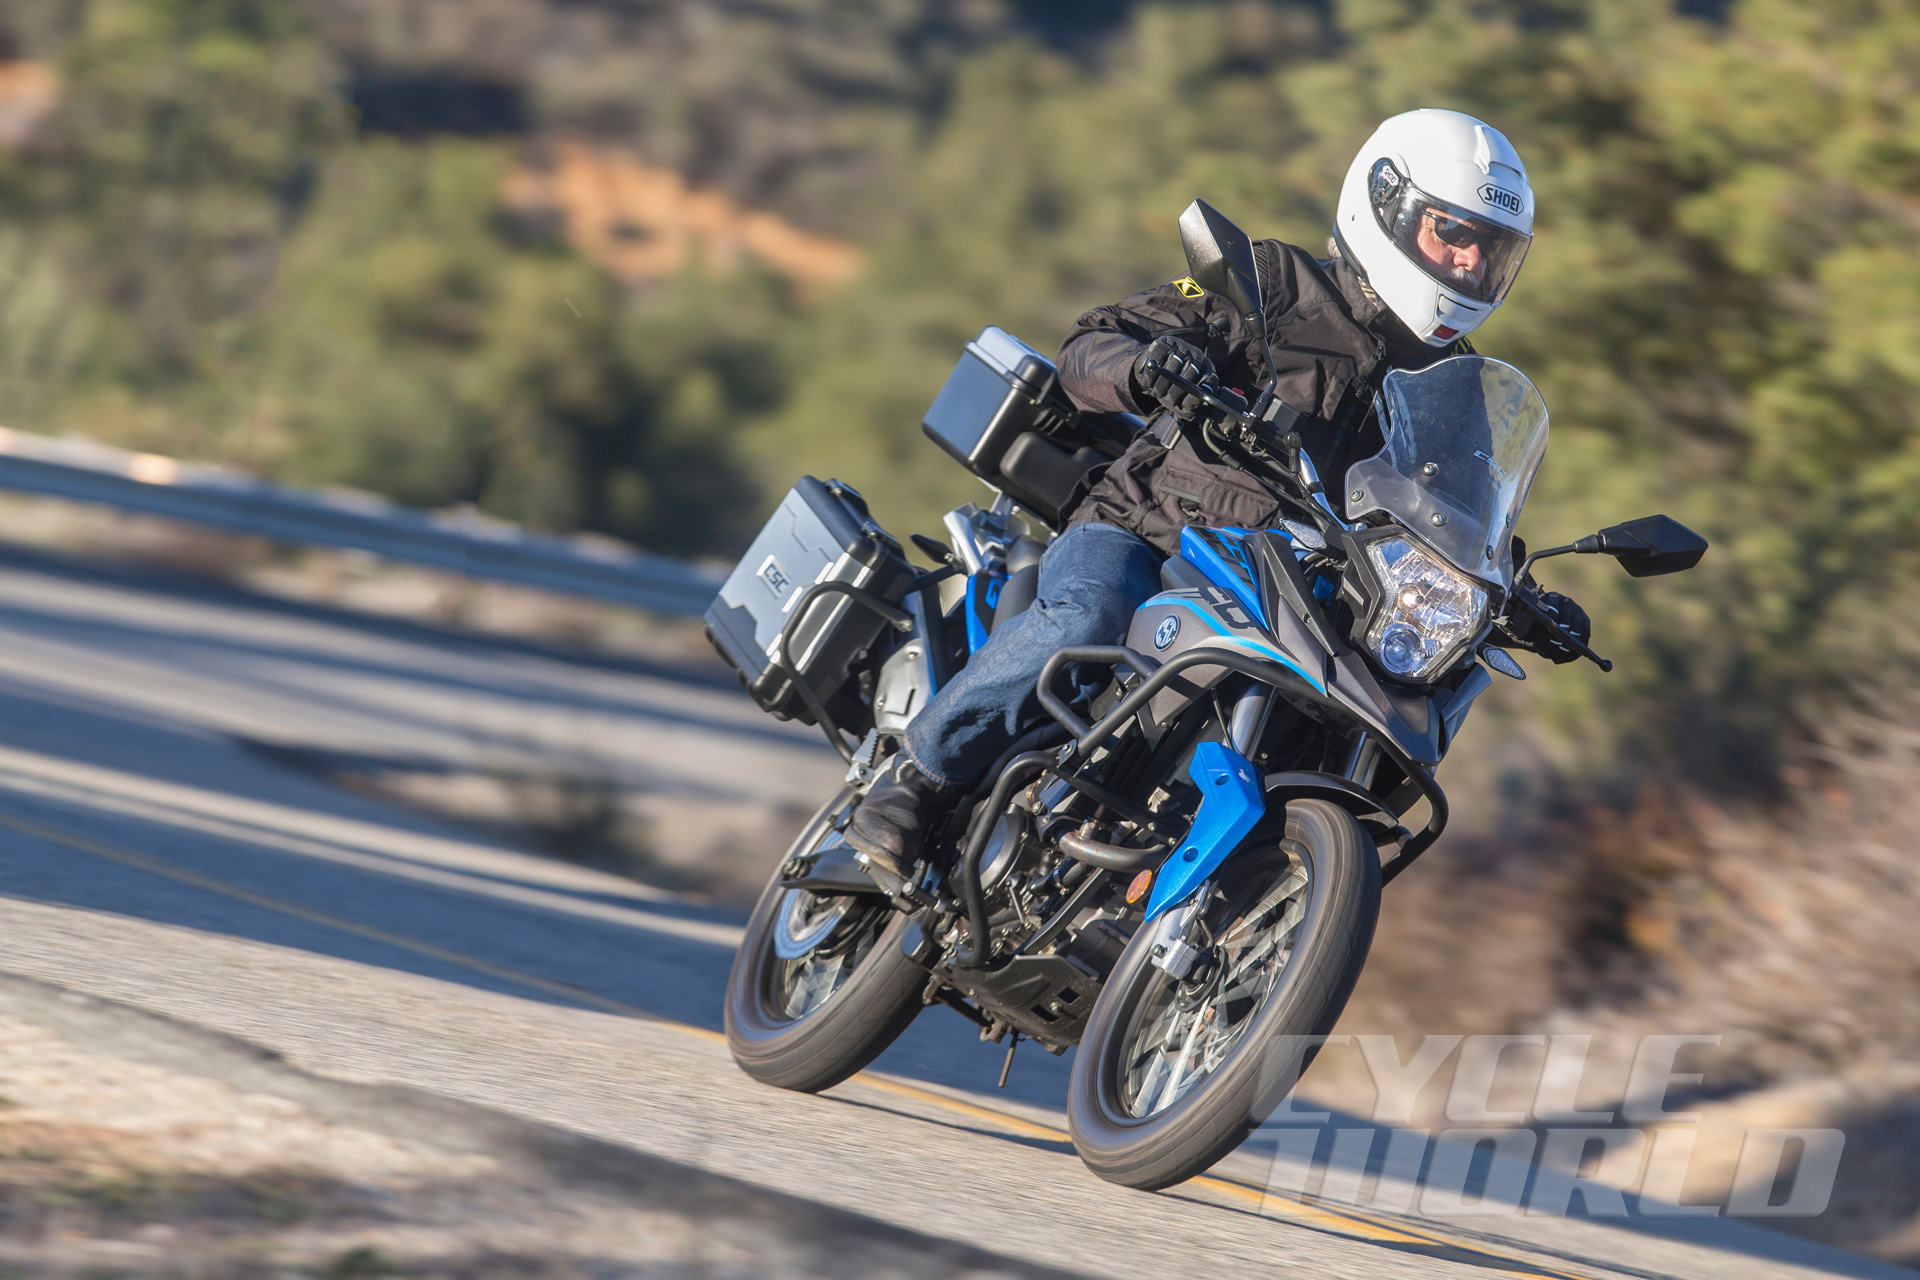 CSC Motorcycles RX3 Cyclone Adventure Motorcycle Review